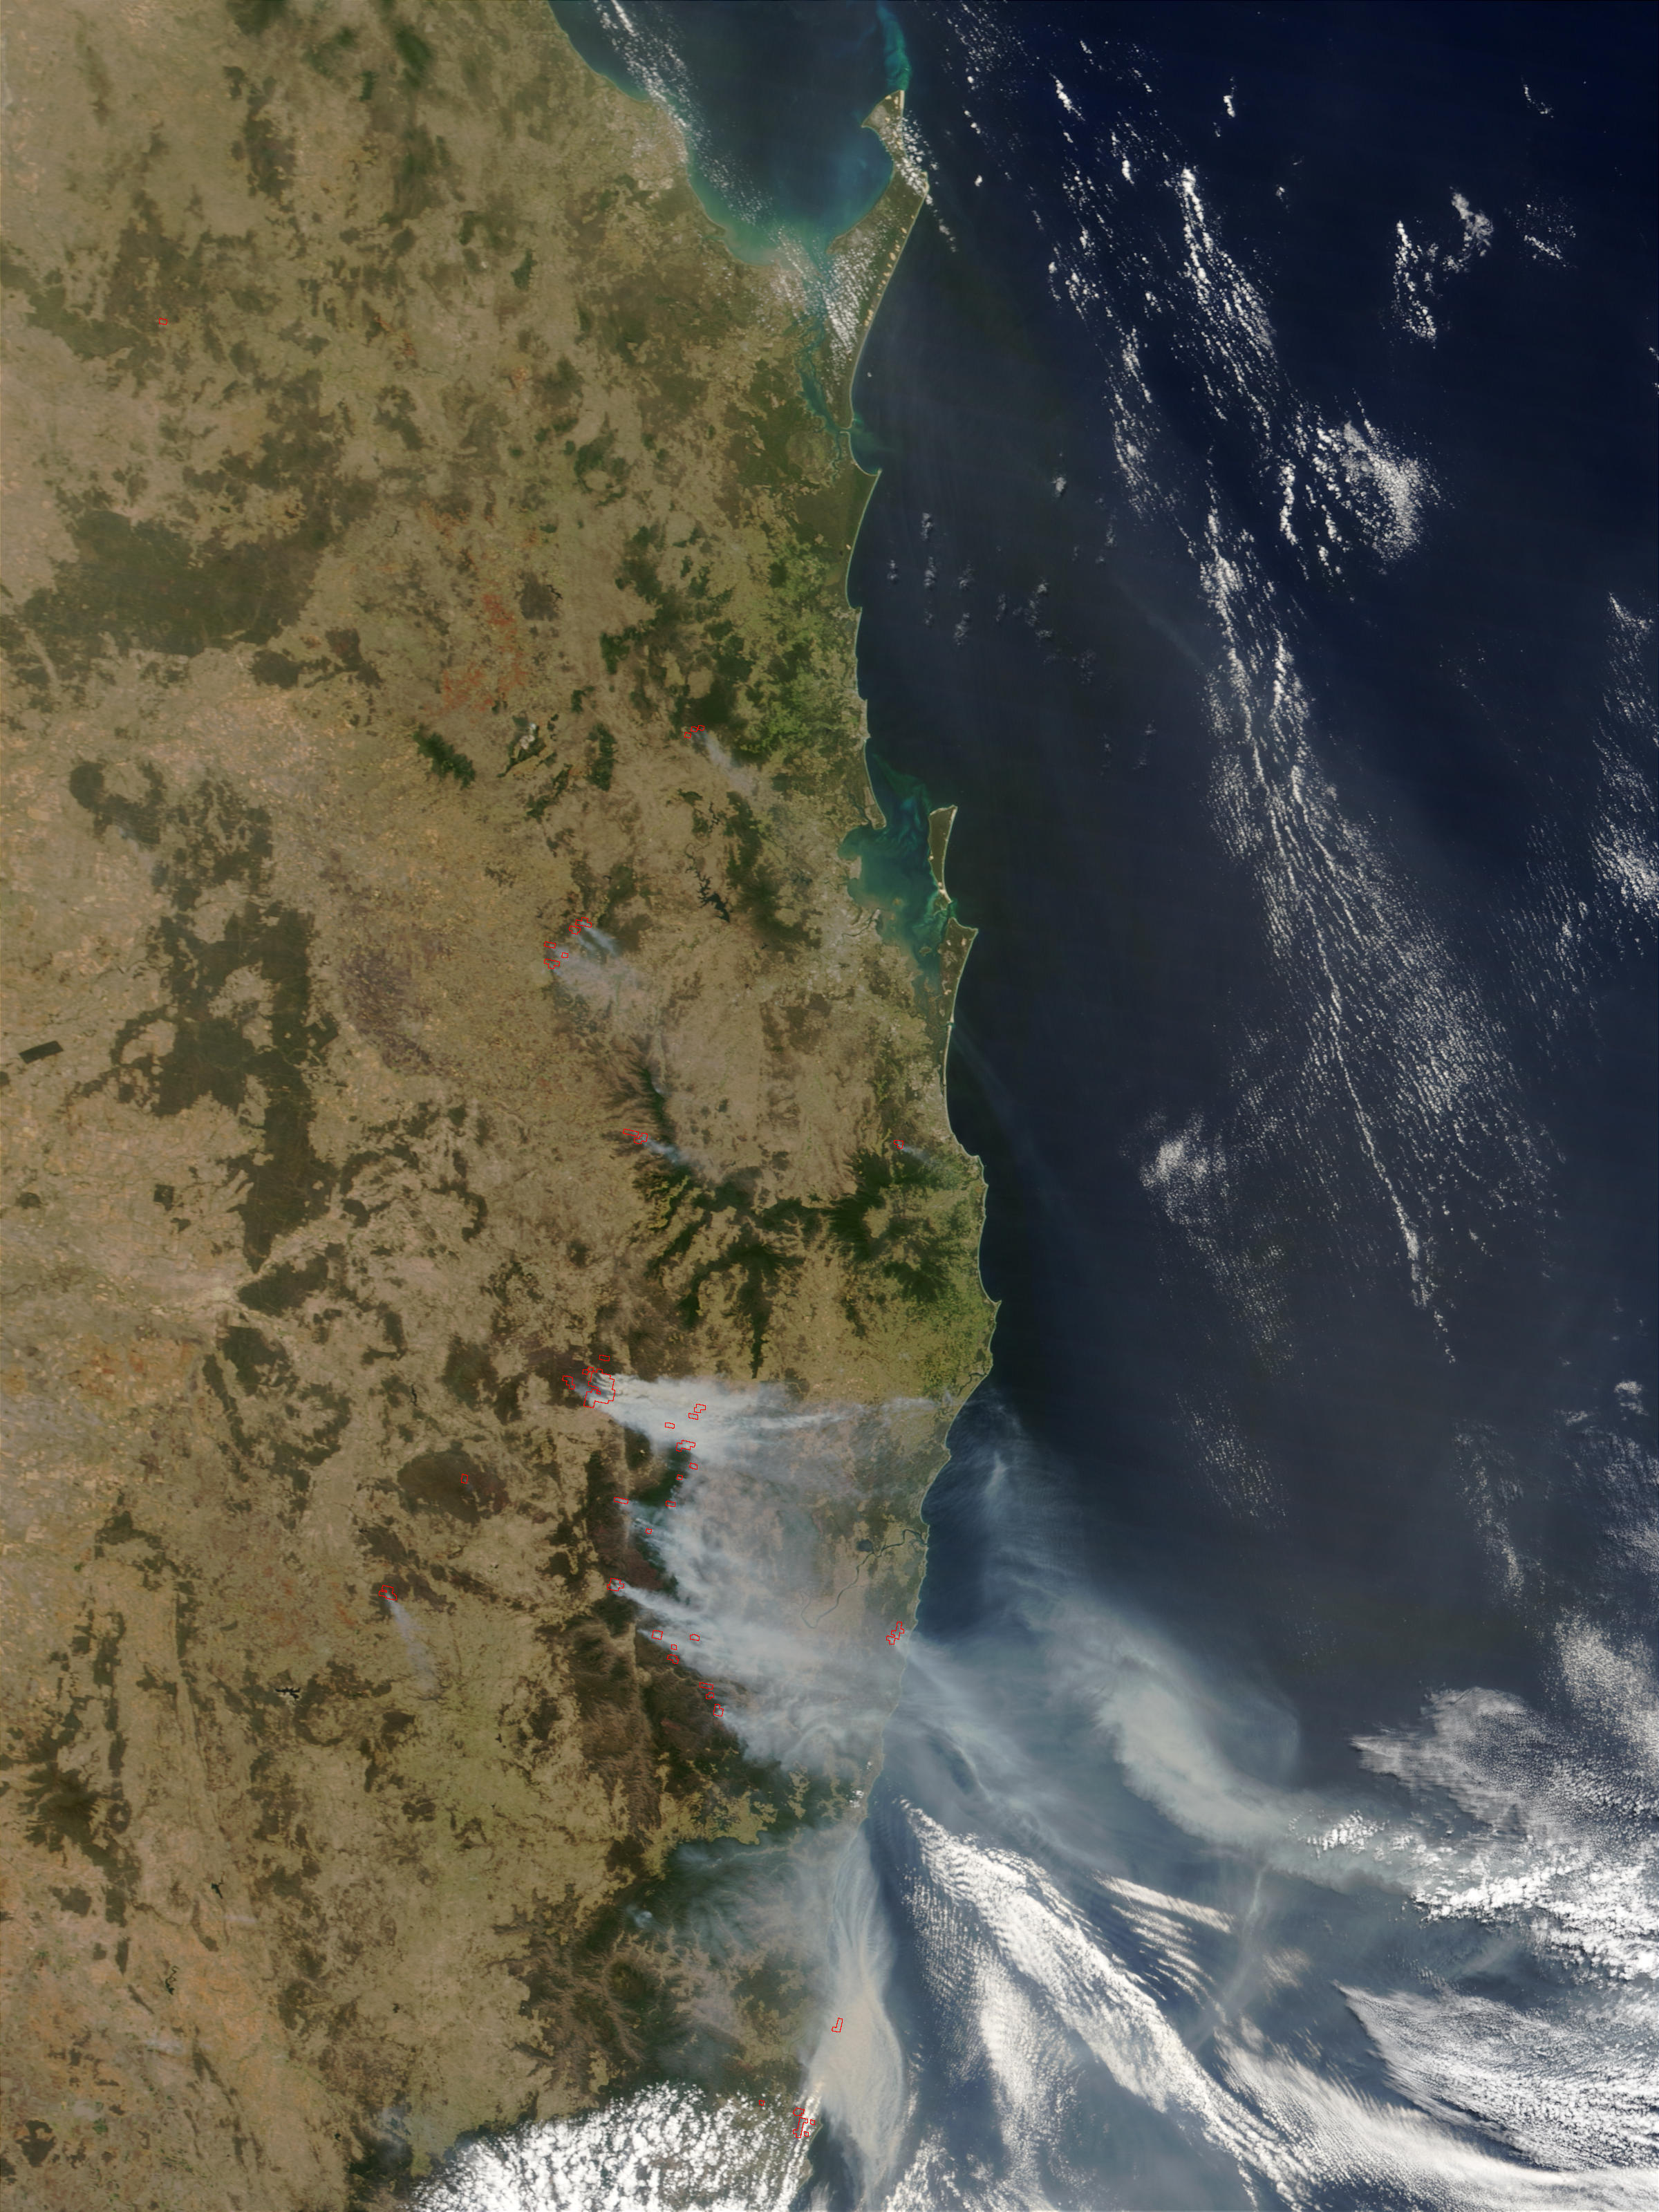 Fires and smoke in New South Wales, Australia